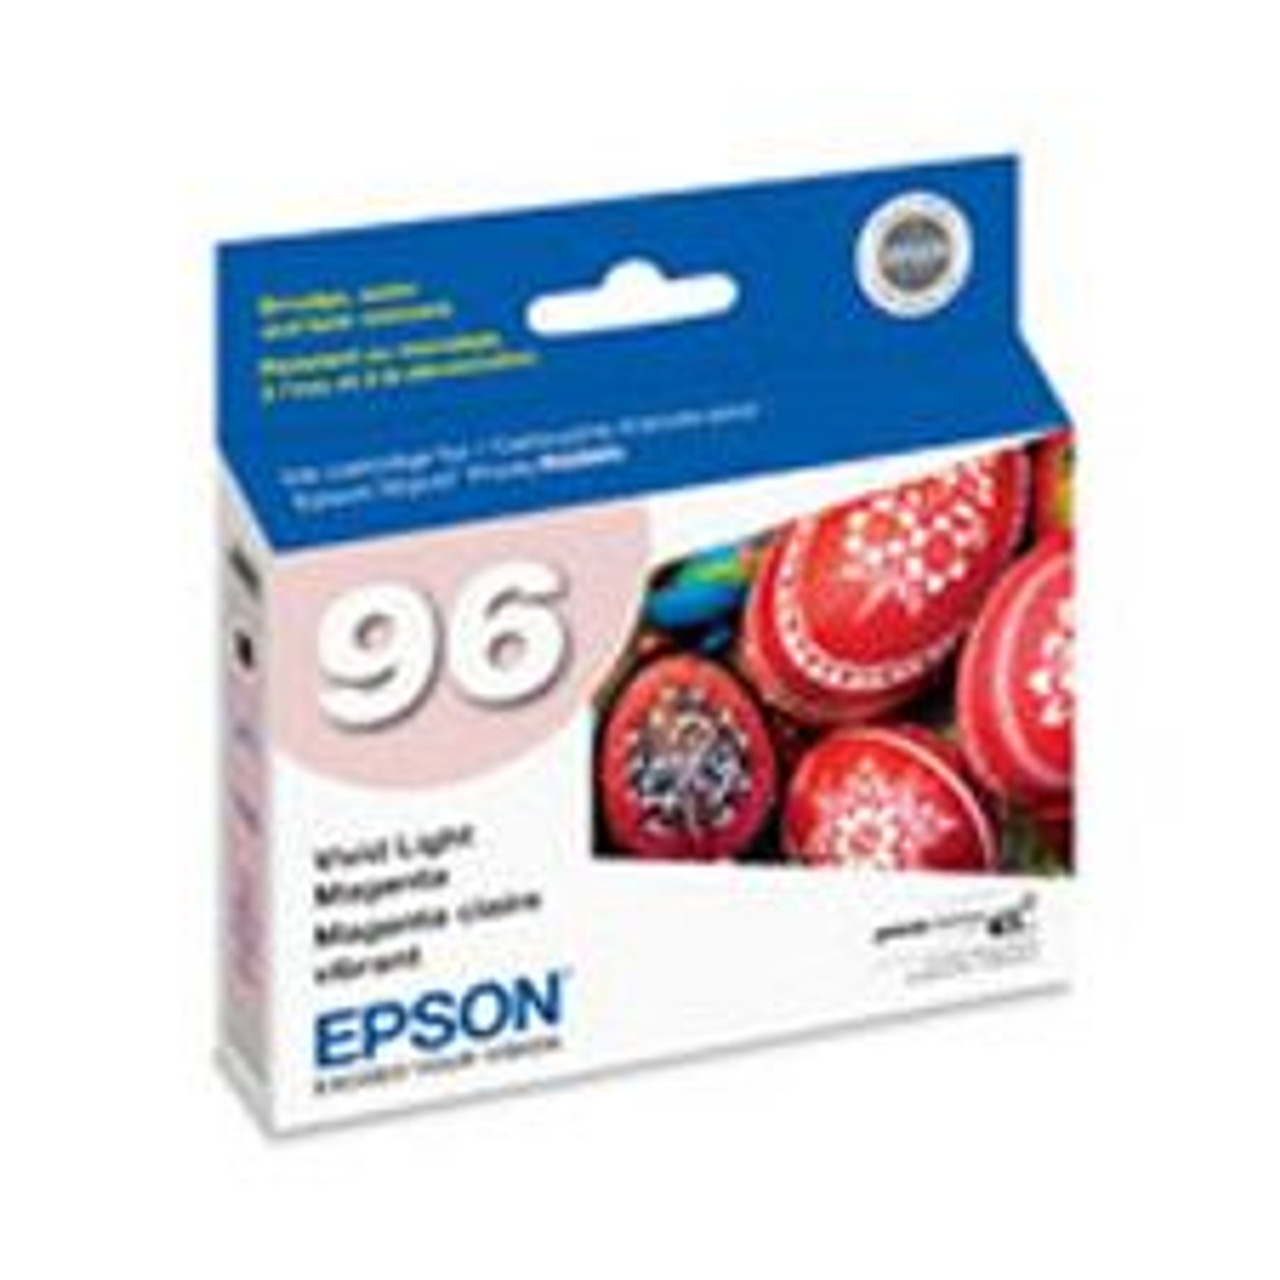 Image for Epson T0966 Vivid Light Magenta Ink Cartridge (T096690) CX Computer Superstore